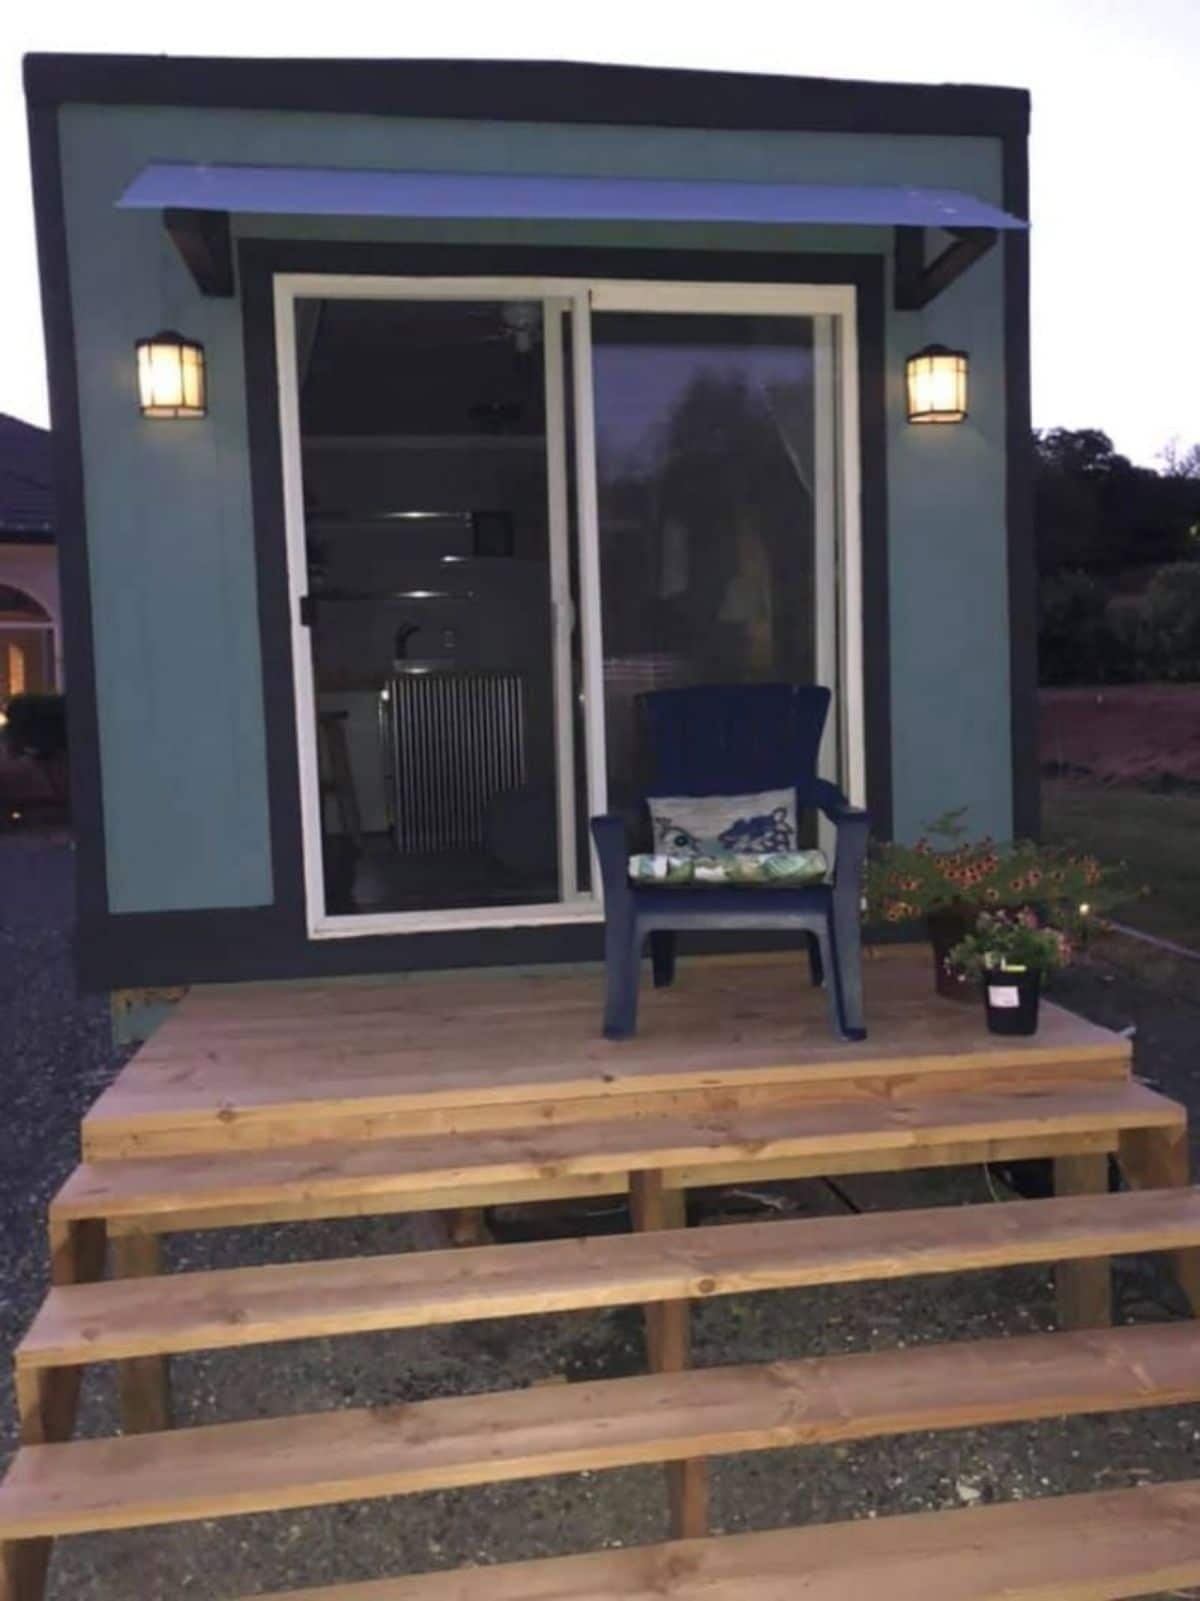 Tiny House With Downstairs Bedroom for $30,000